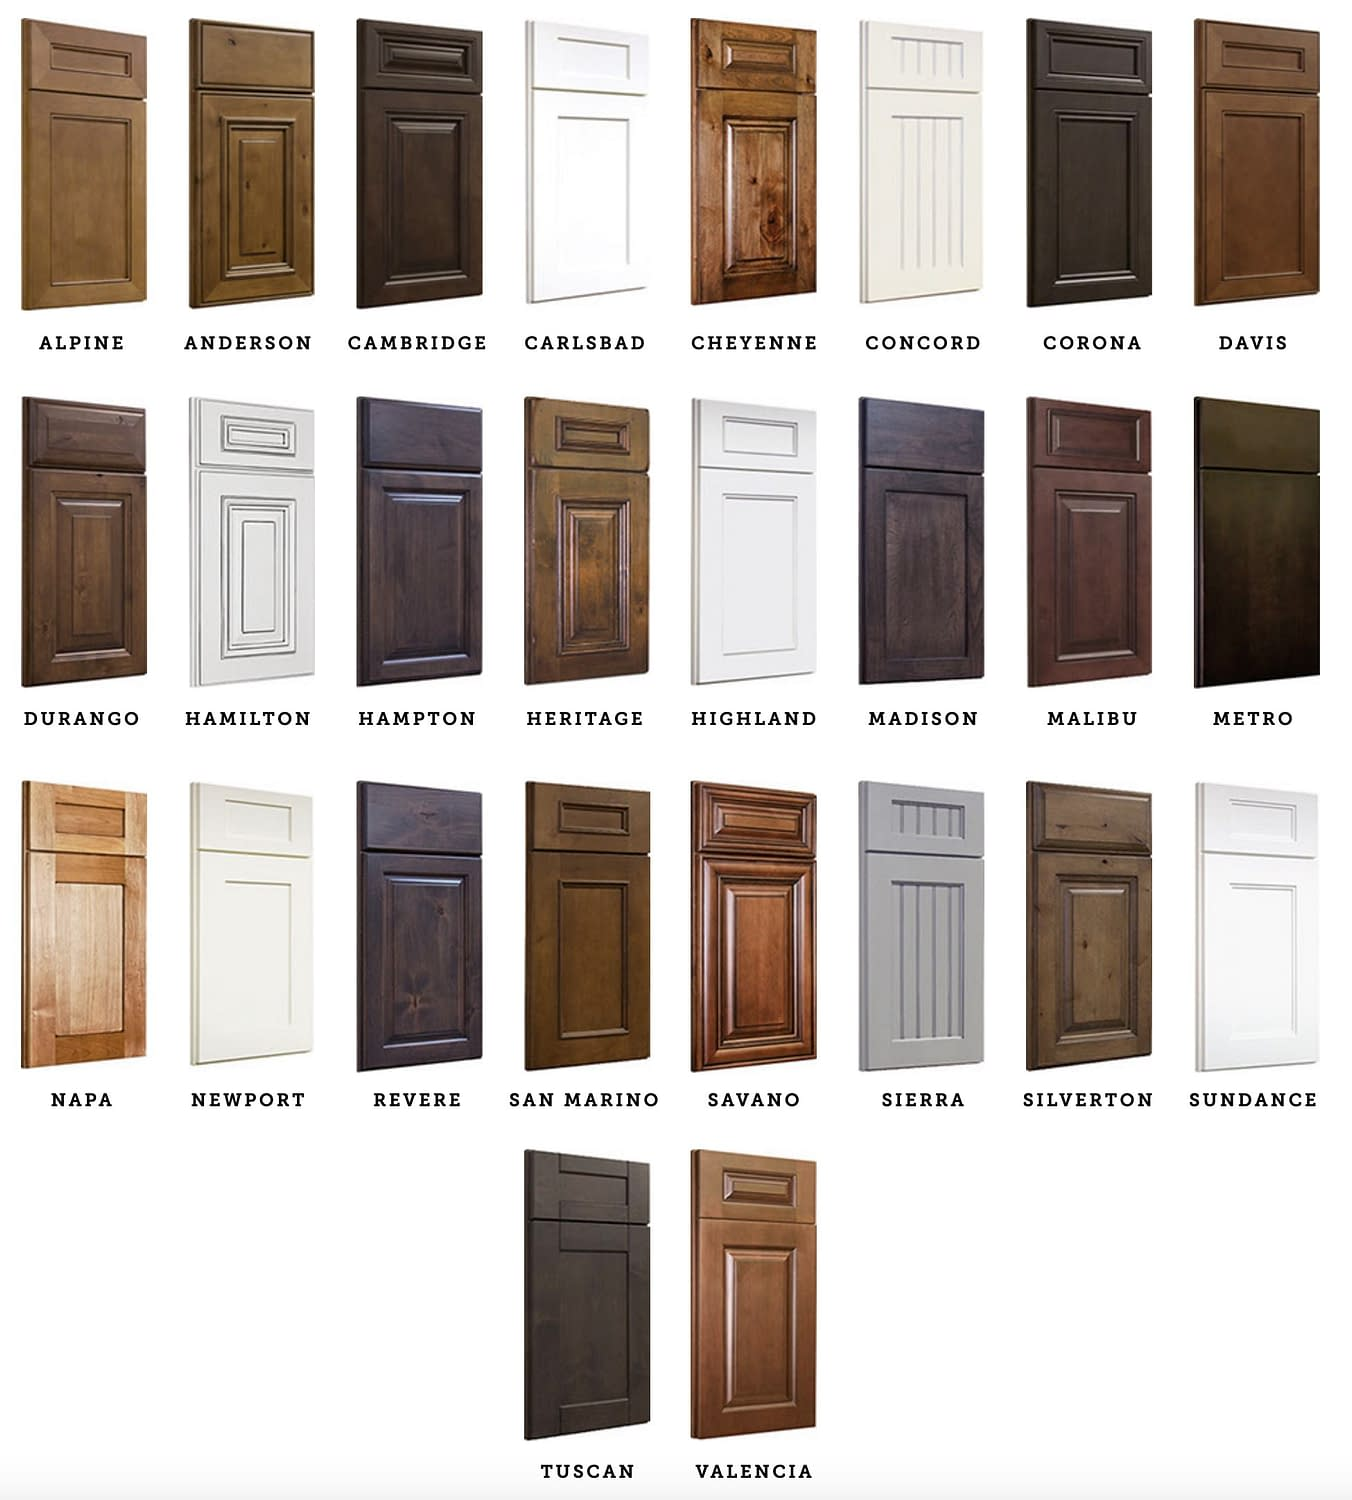 Sollid Cabinets Designer Series cabinetry